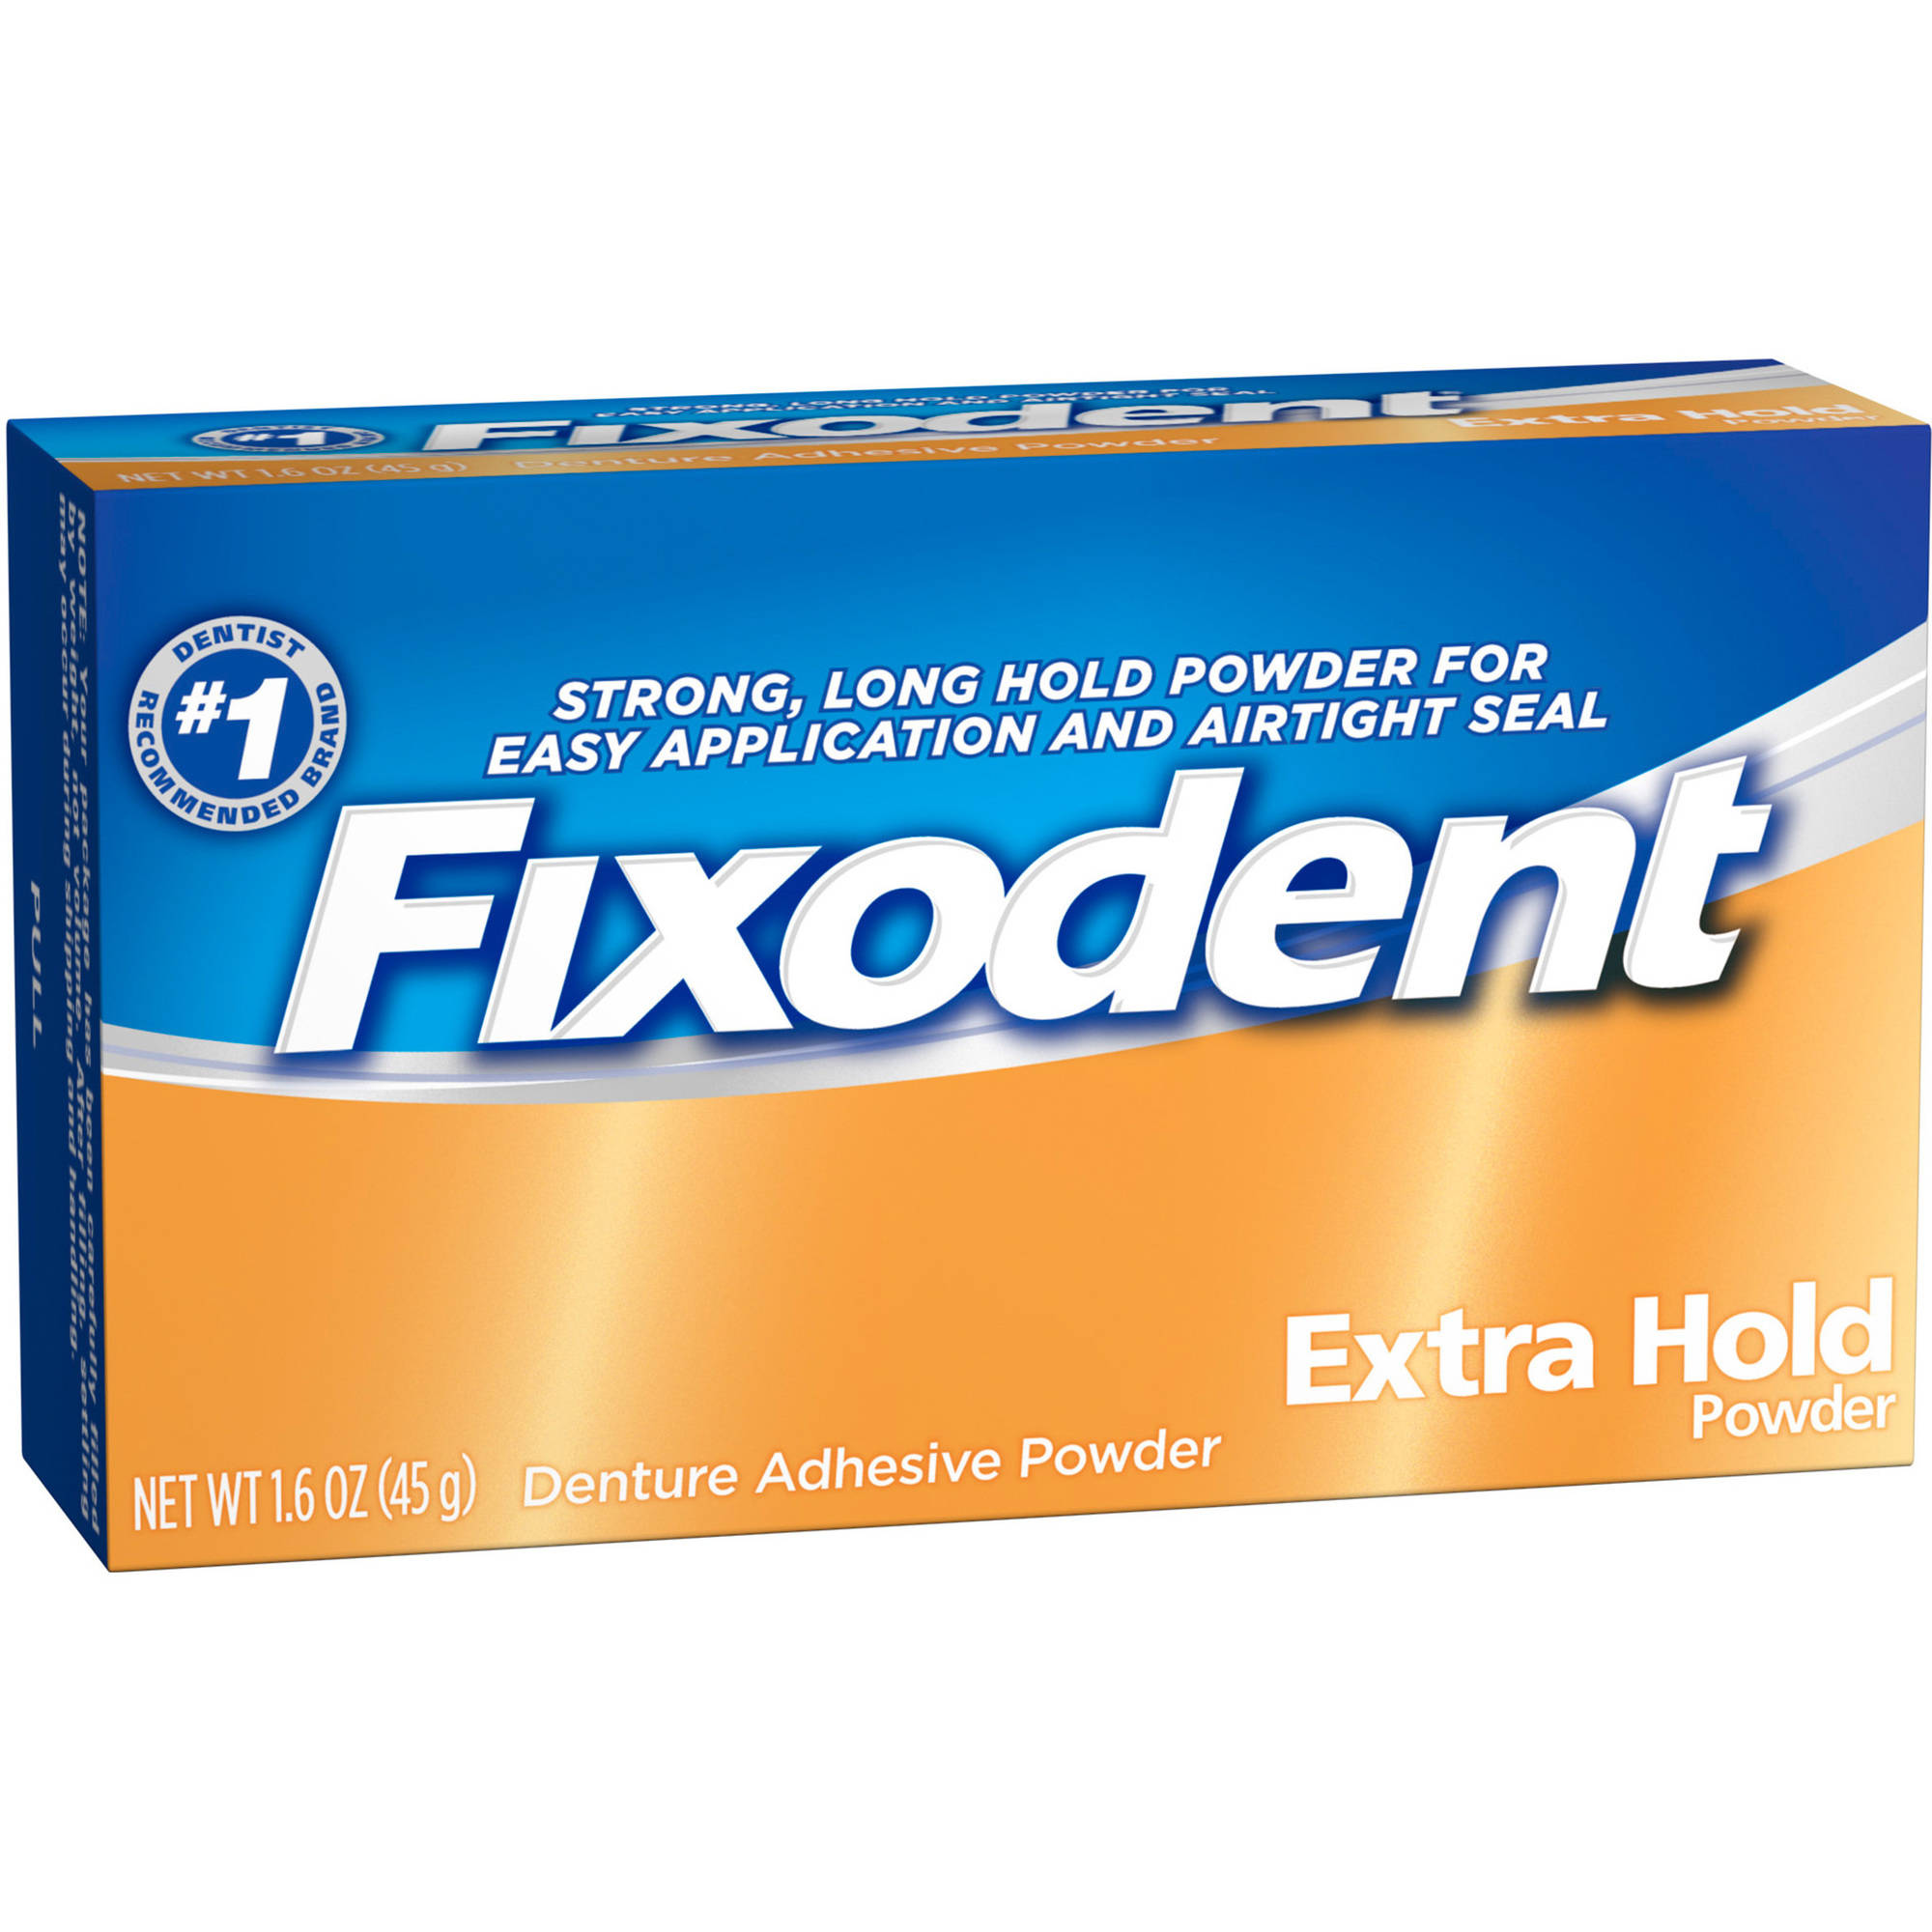 Fixodent Extra Hold Denture Adhesive Powder, 1.6 oz